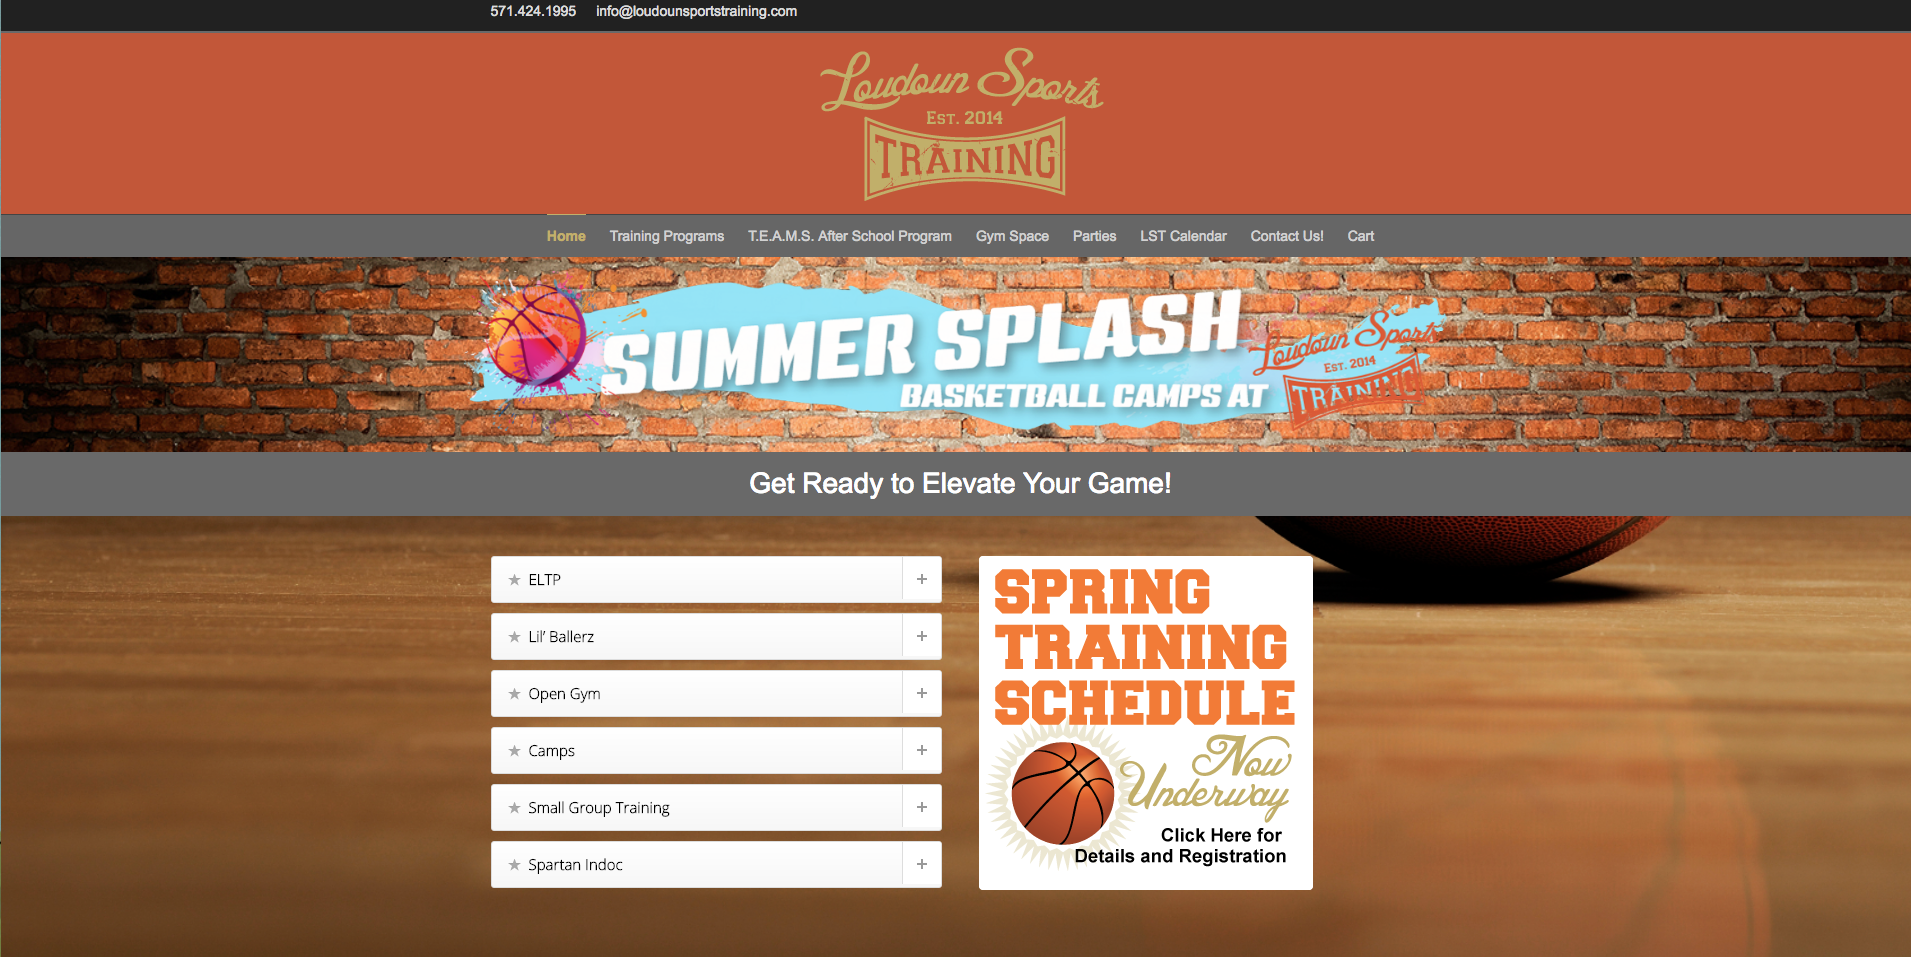 Loudoun Sports Training Website designed by Big Rock Studio